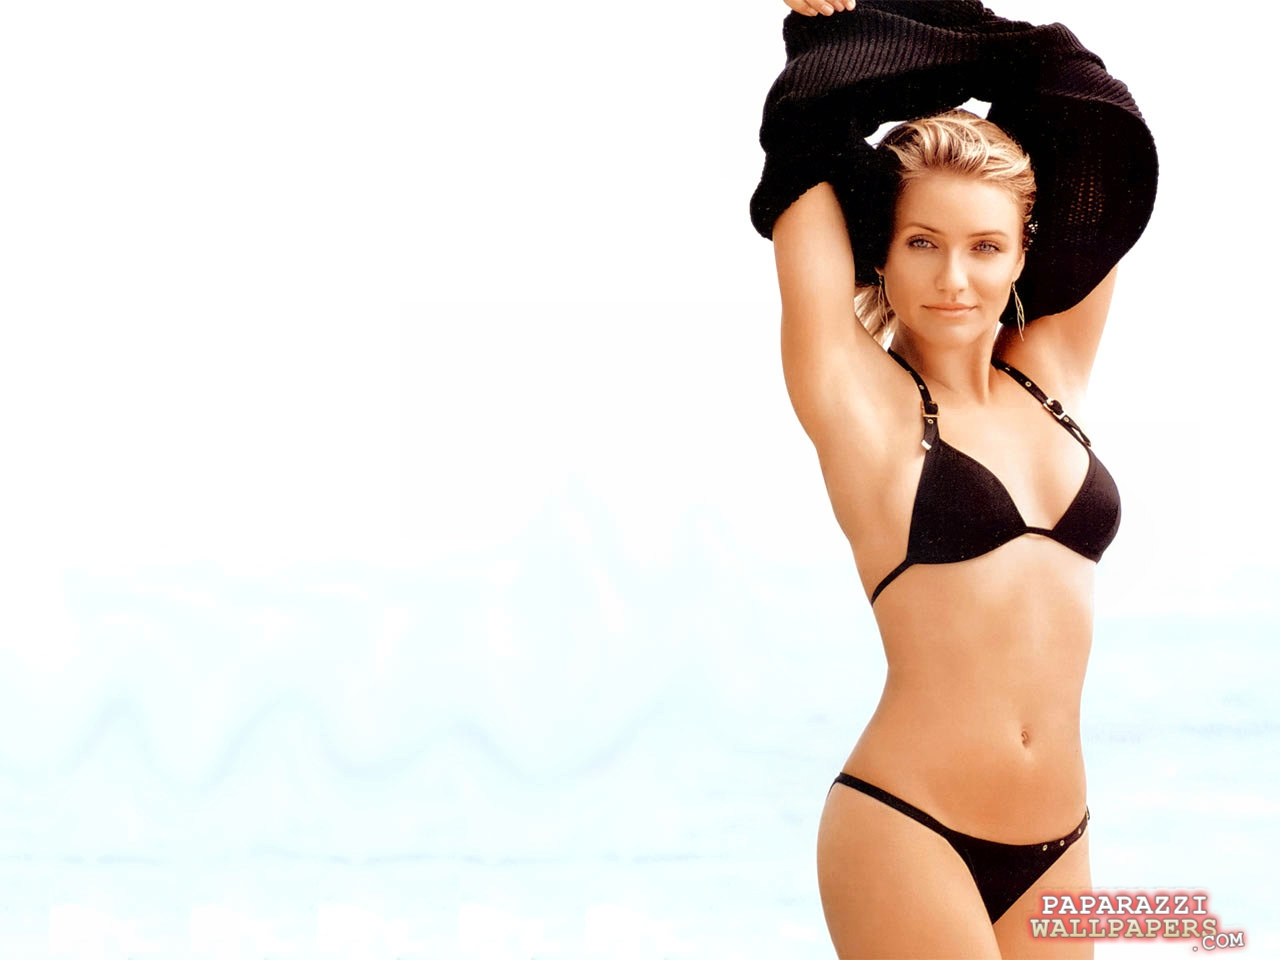 cameron diaz wallpapers 06